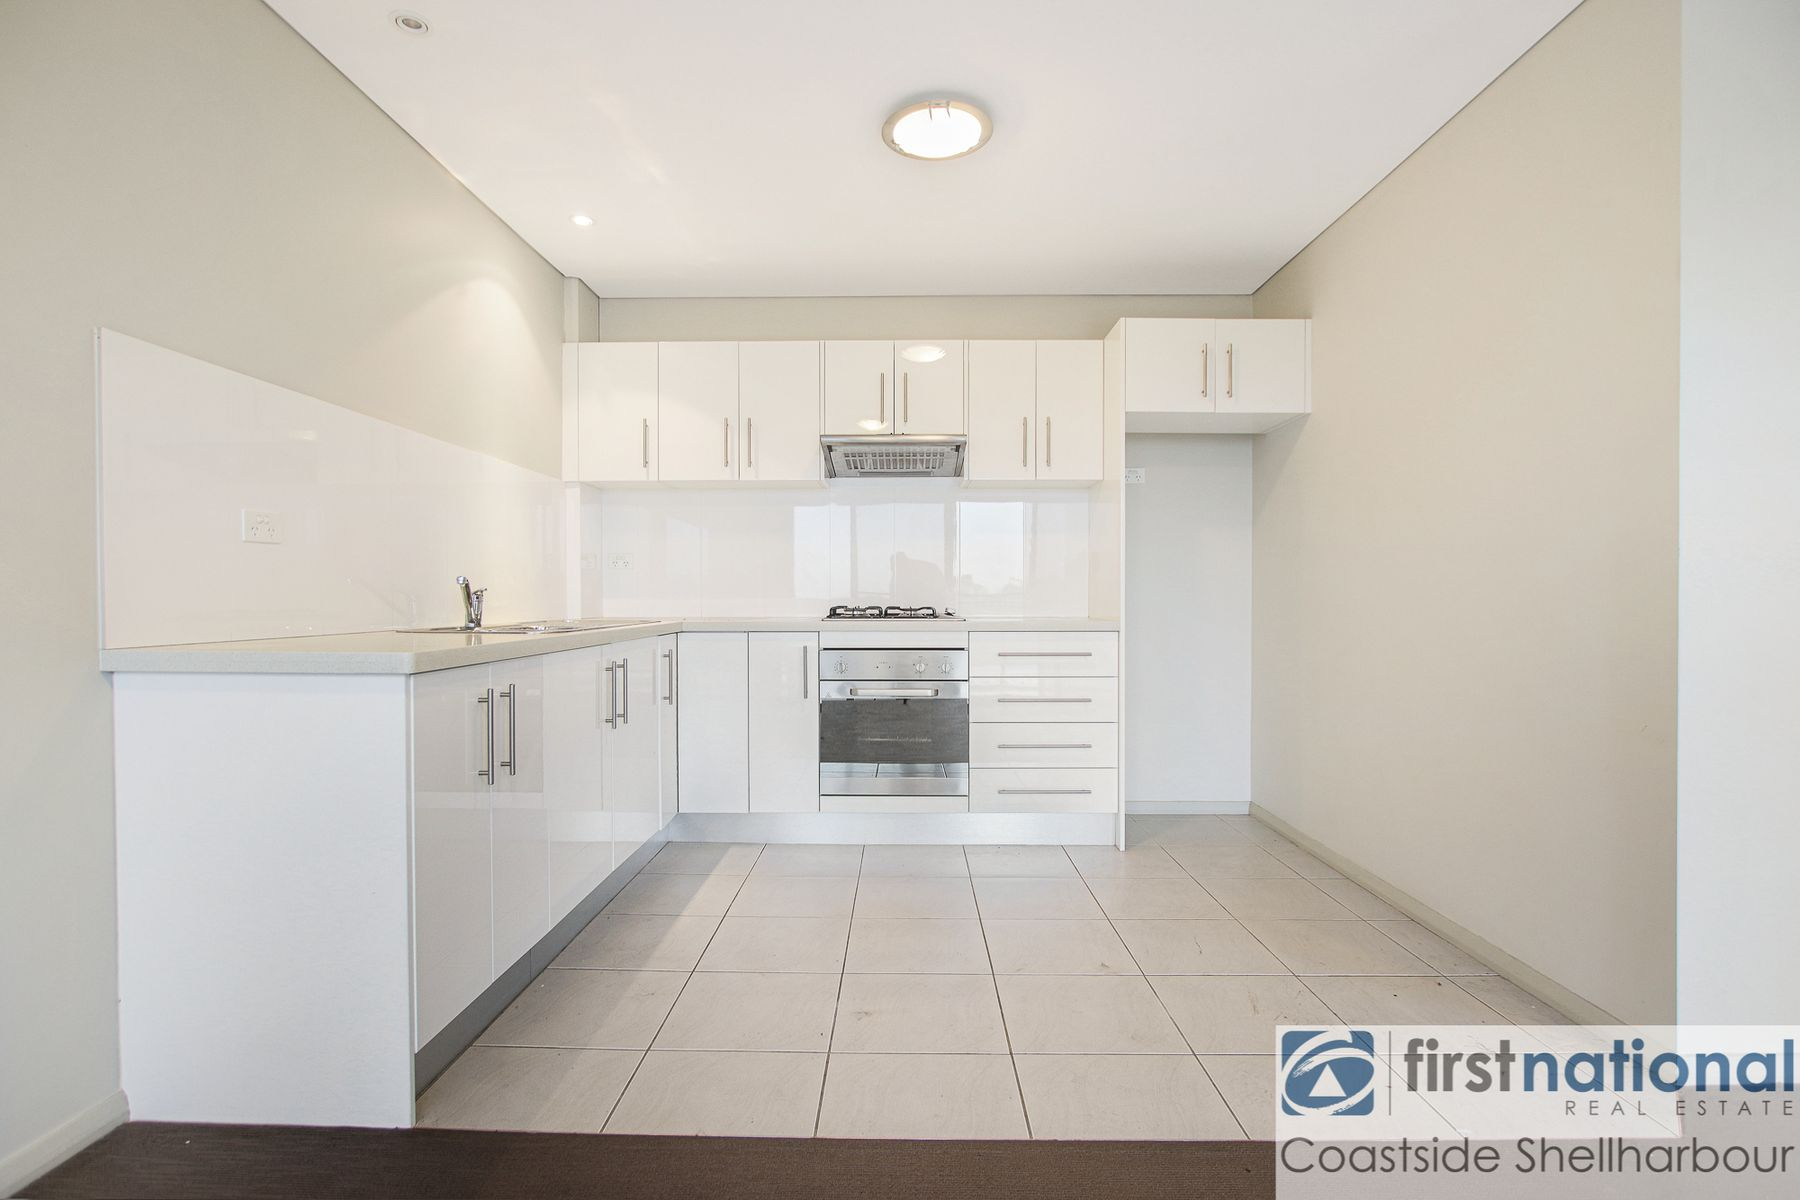 2/7 Minga Avenue, Shellharbour City Centre, NSW 2529